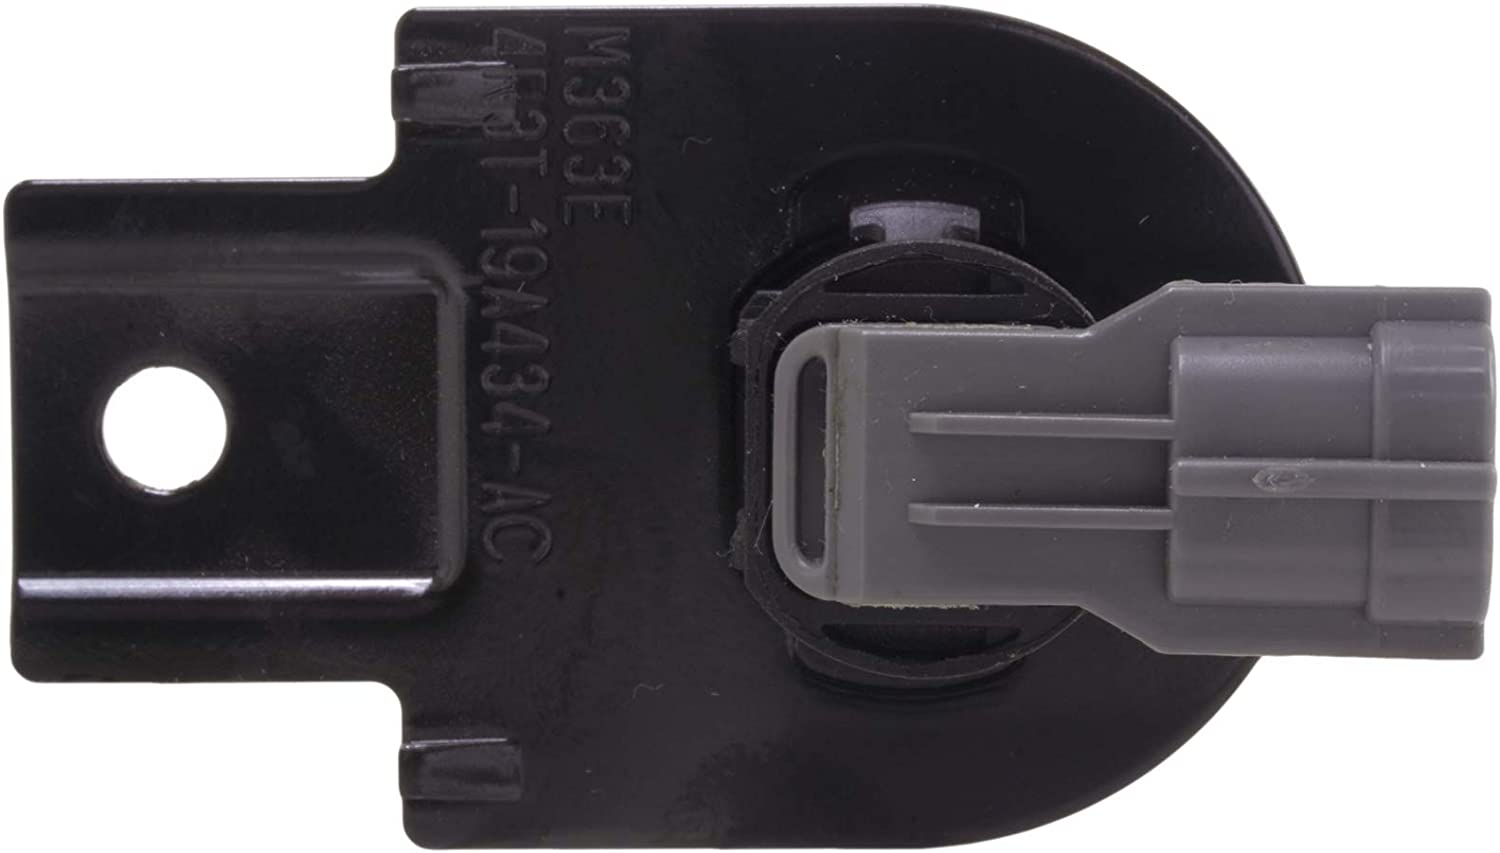 WVE by NTK 1S8965 Hood Ajar Indicator Switch 1 Pack